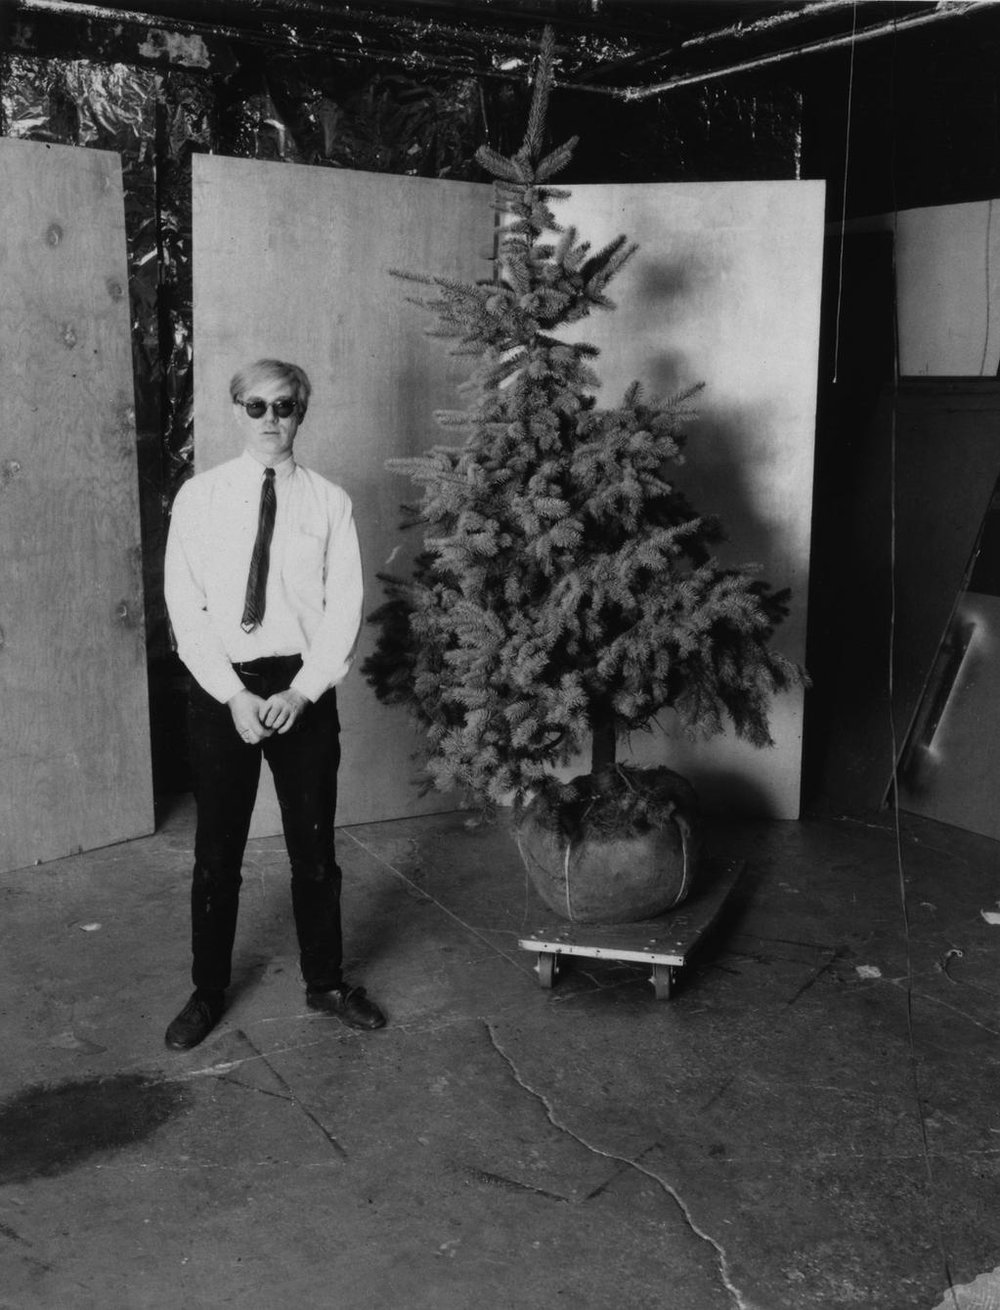 Unknown photographer,  Andy Warhol and his Christmas tree in the Factory  (1964).